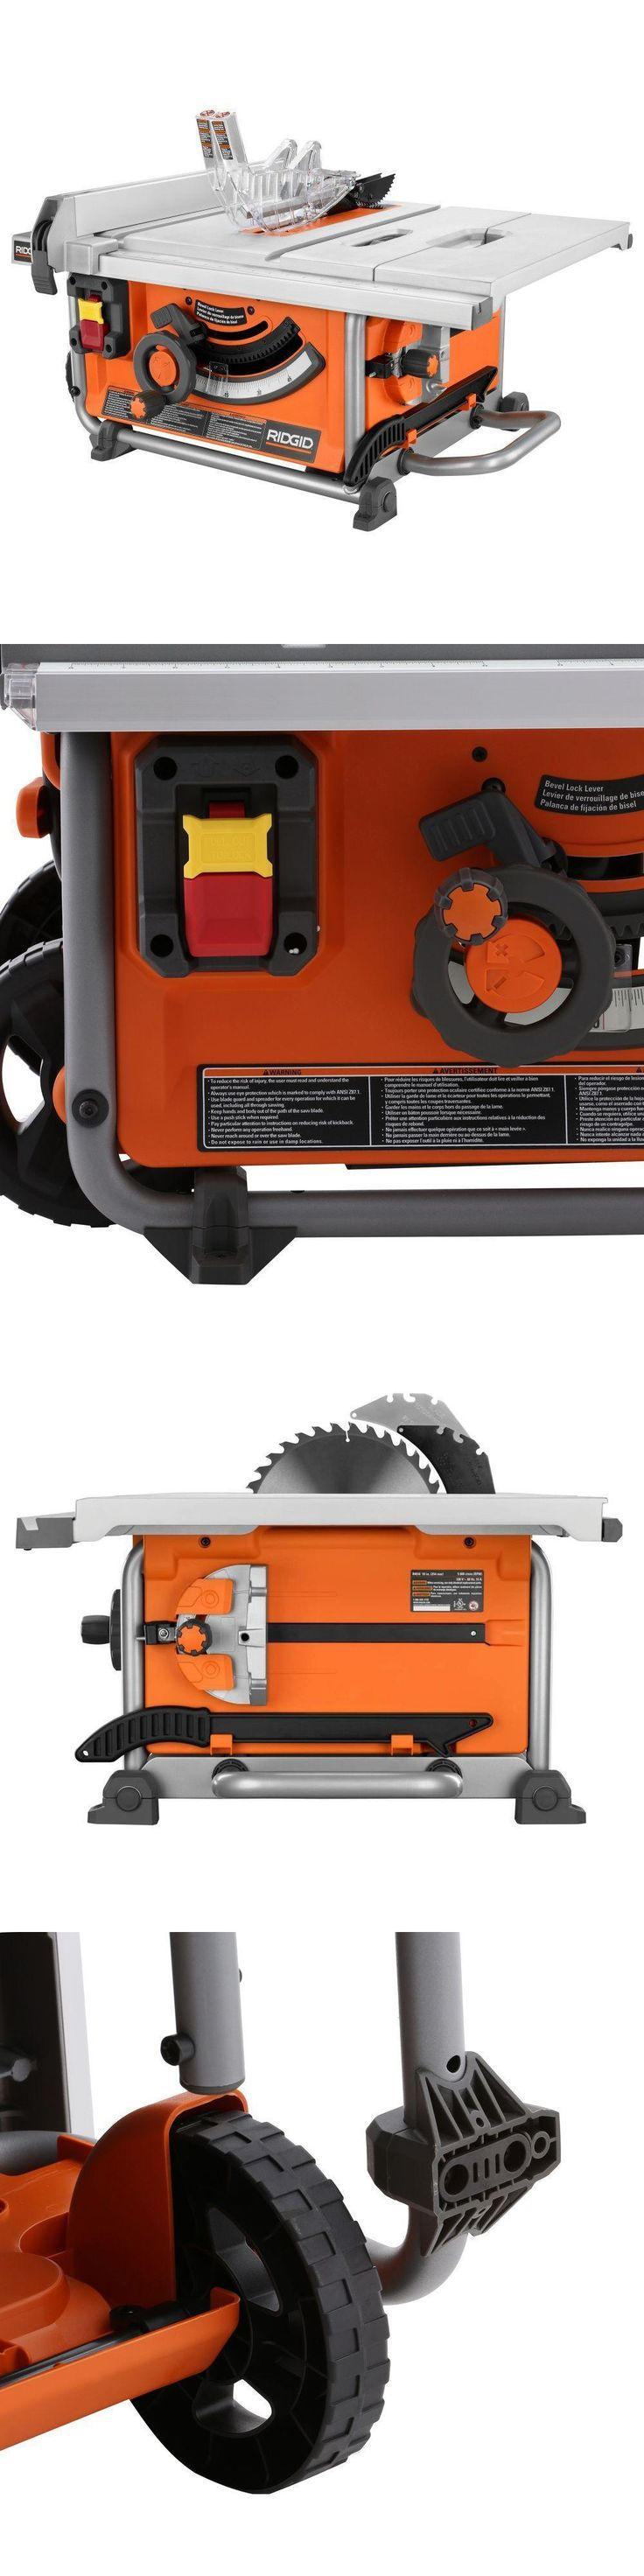 Table Saws 122835: Ridgid 15 Amp 10 In.Compact Table Saw Dual-Locking Rip Retractable Handle Orange -> BUY IT NOW ONLY: $263.26 on eBay!